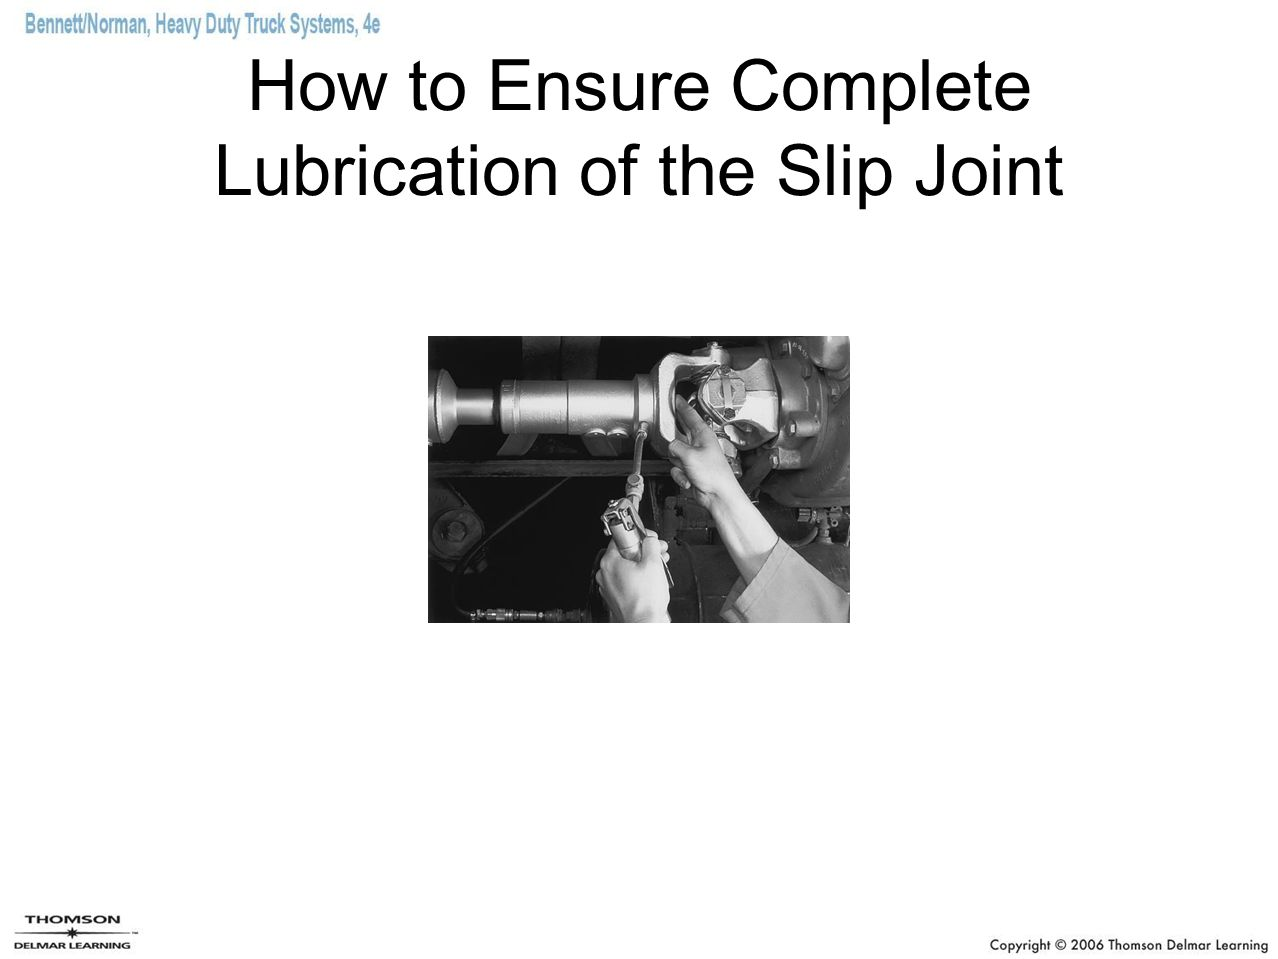 How to Ensure Complete Lubrication of the Slip Joint